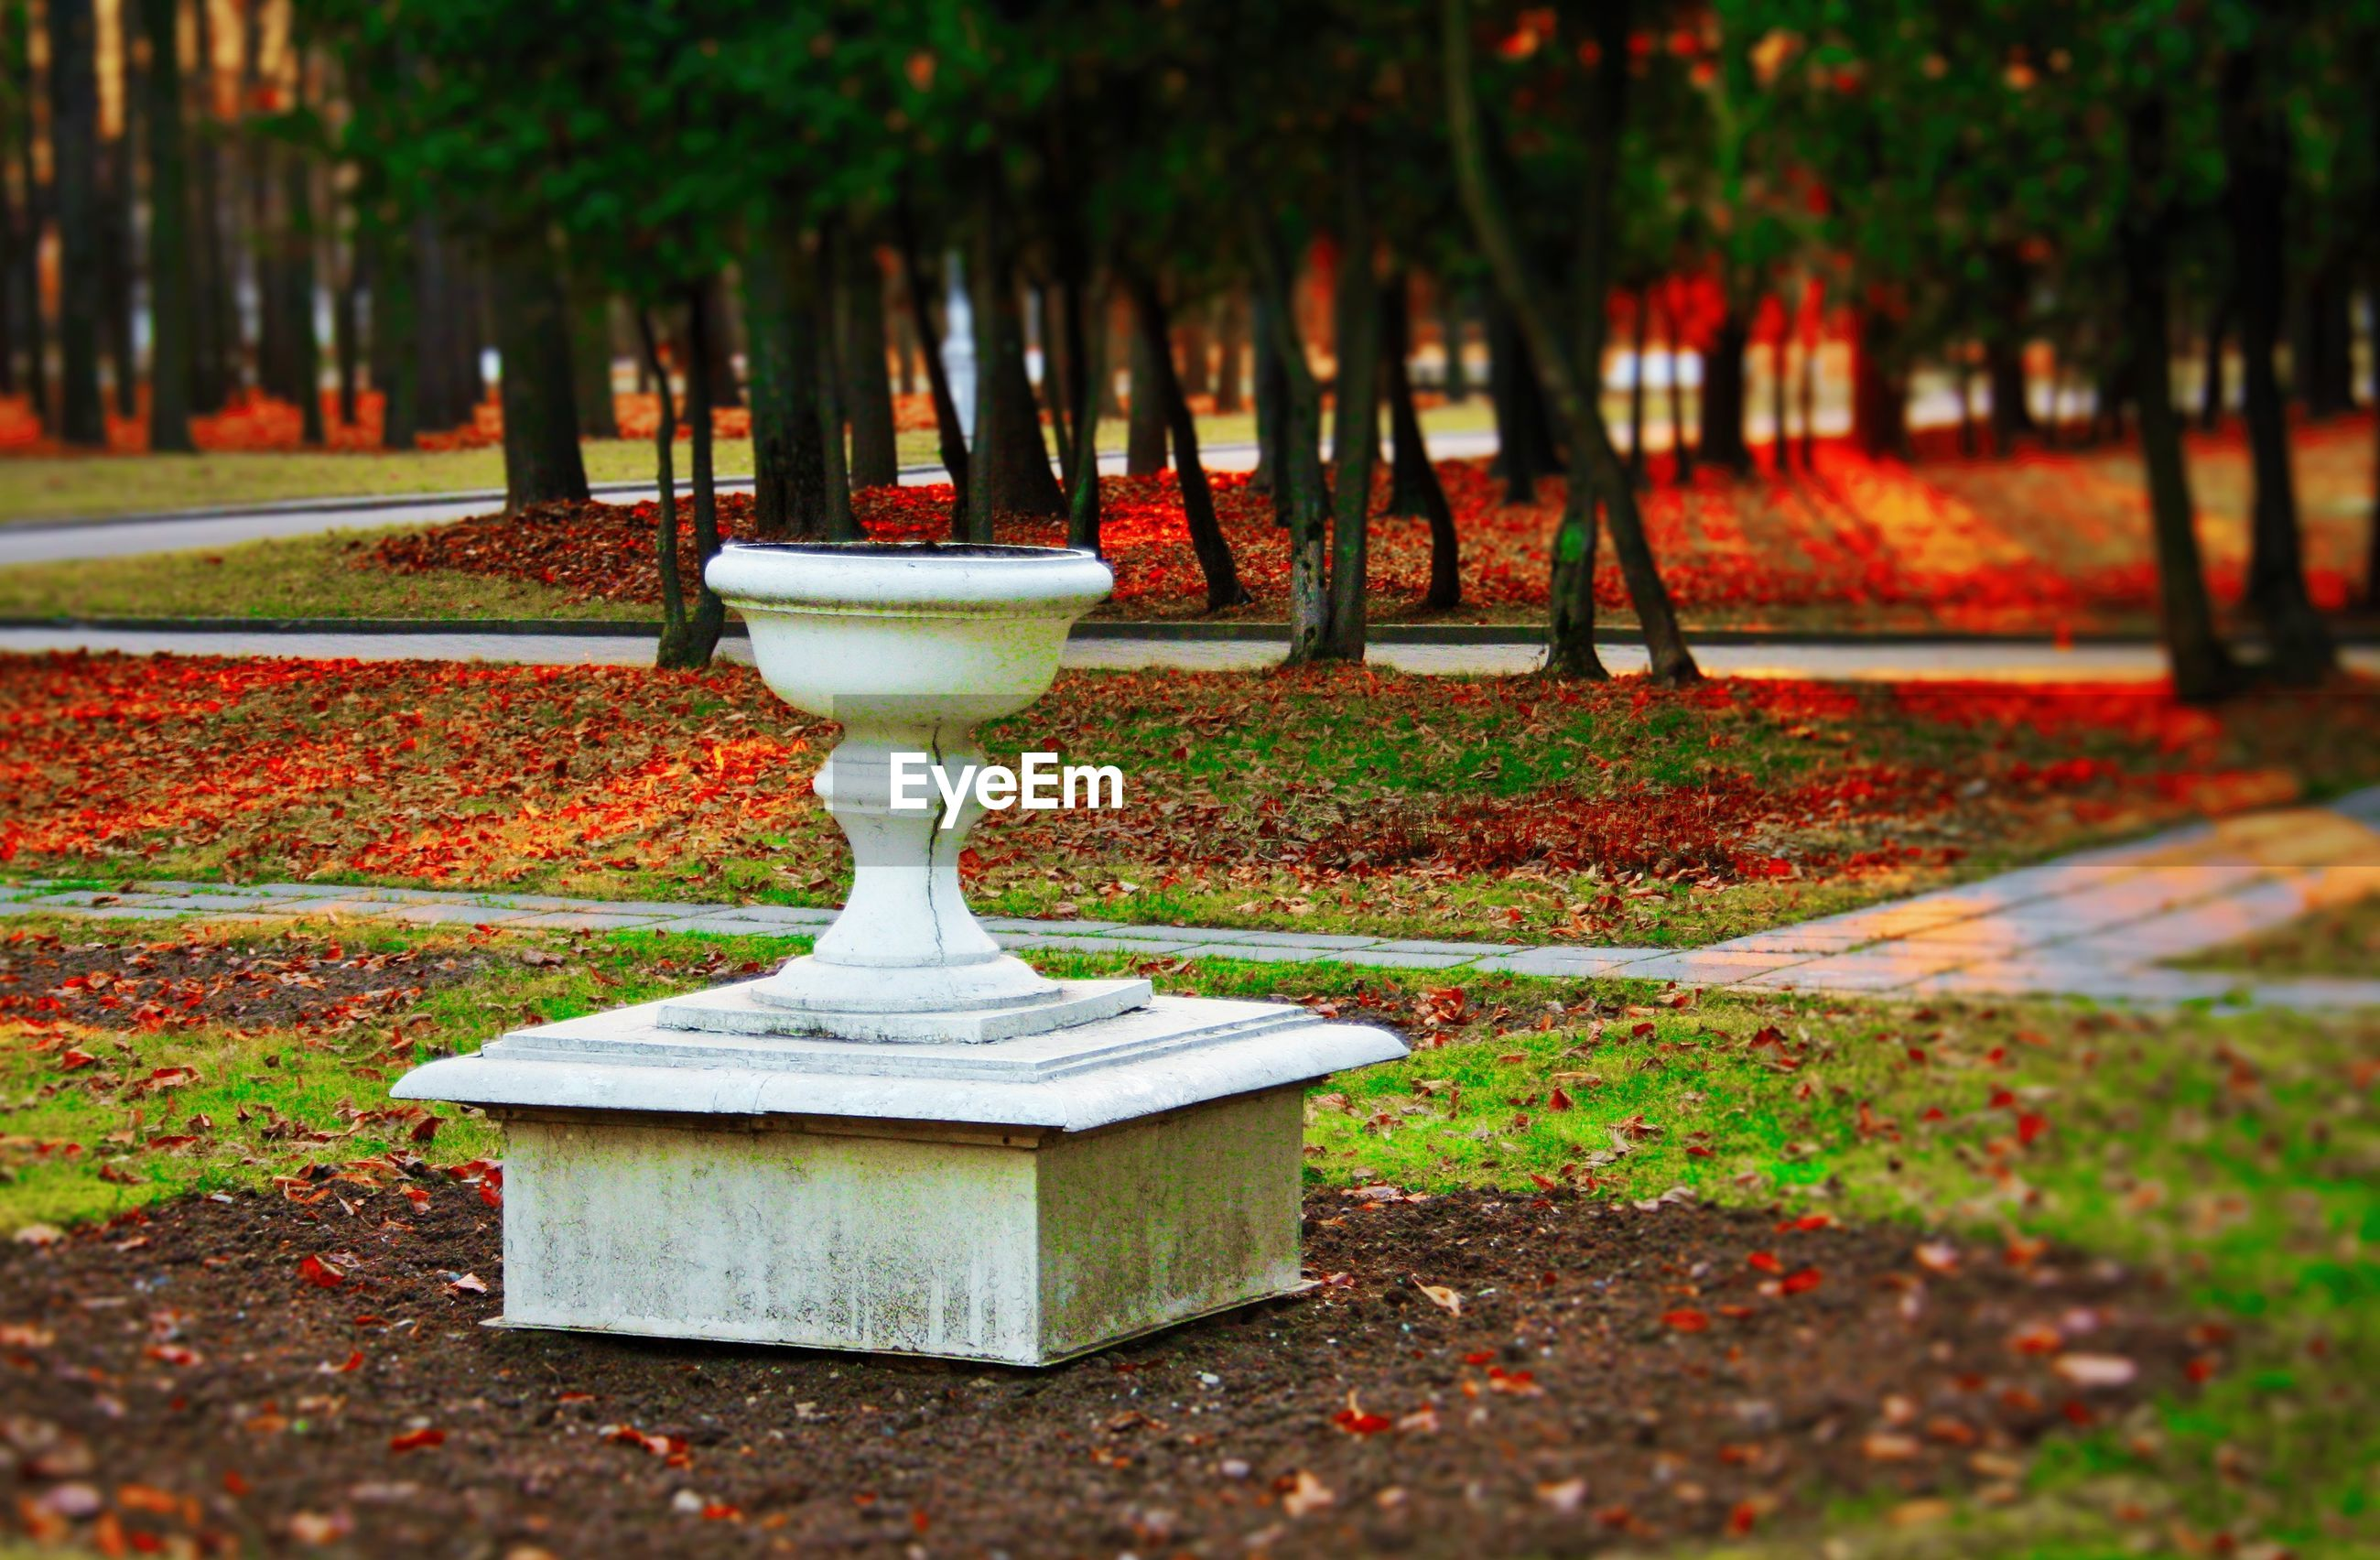 tree, park - man made space, focus on foreground, leaf, growth, autumn, footpath, selective focus, empty, outdoors, bench, park, nature, surface level, grass, no people, day, religion, season, incidental people